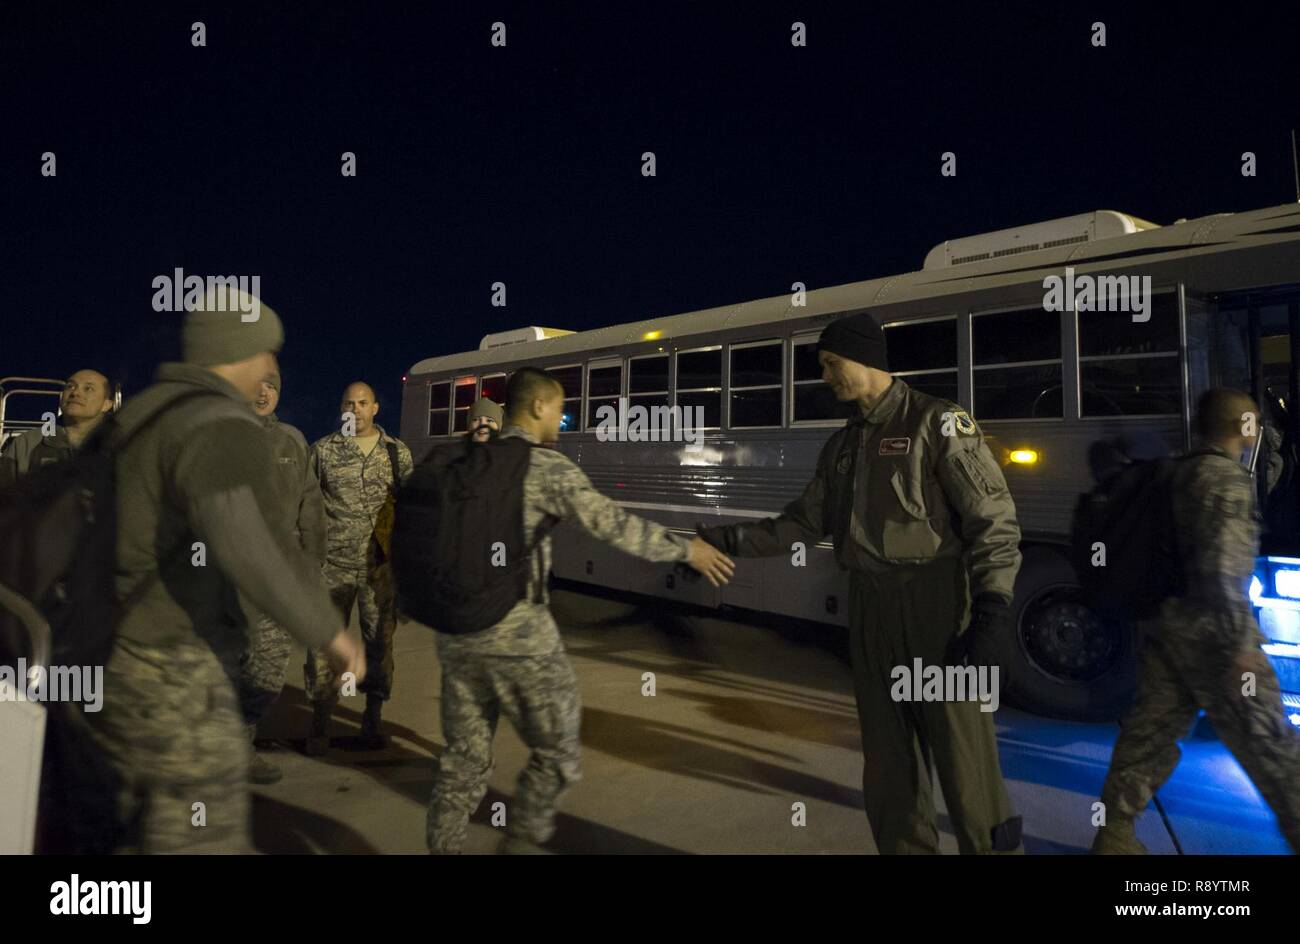 Air Force Lt. Col. David Skalicky, 90th Fighter Squadron commander, greets Airmen after arriving back from Royal Australian Air Force Base Tindal, Northern Territory, Australia, March 18, 2017 at Joint Base Elmendorf-Richardson, Alaska. More than 200 Airmen participated in a bilateral exercise as part of the Enhanced Air Cooperation initiative. - Stock Image